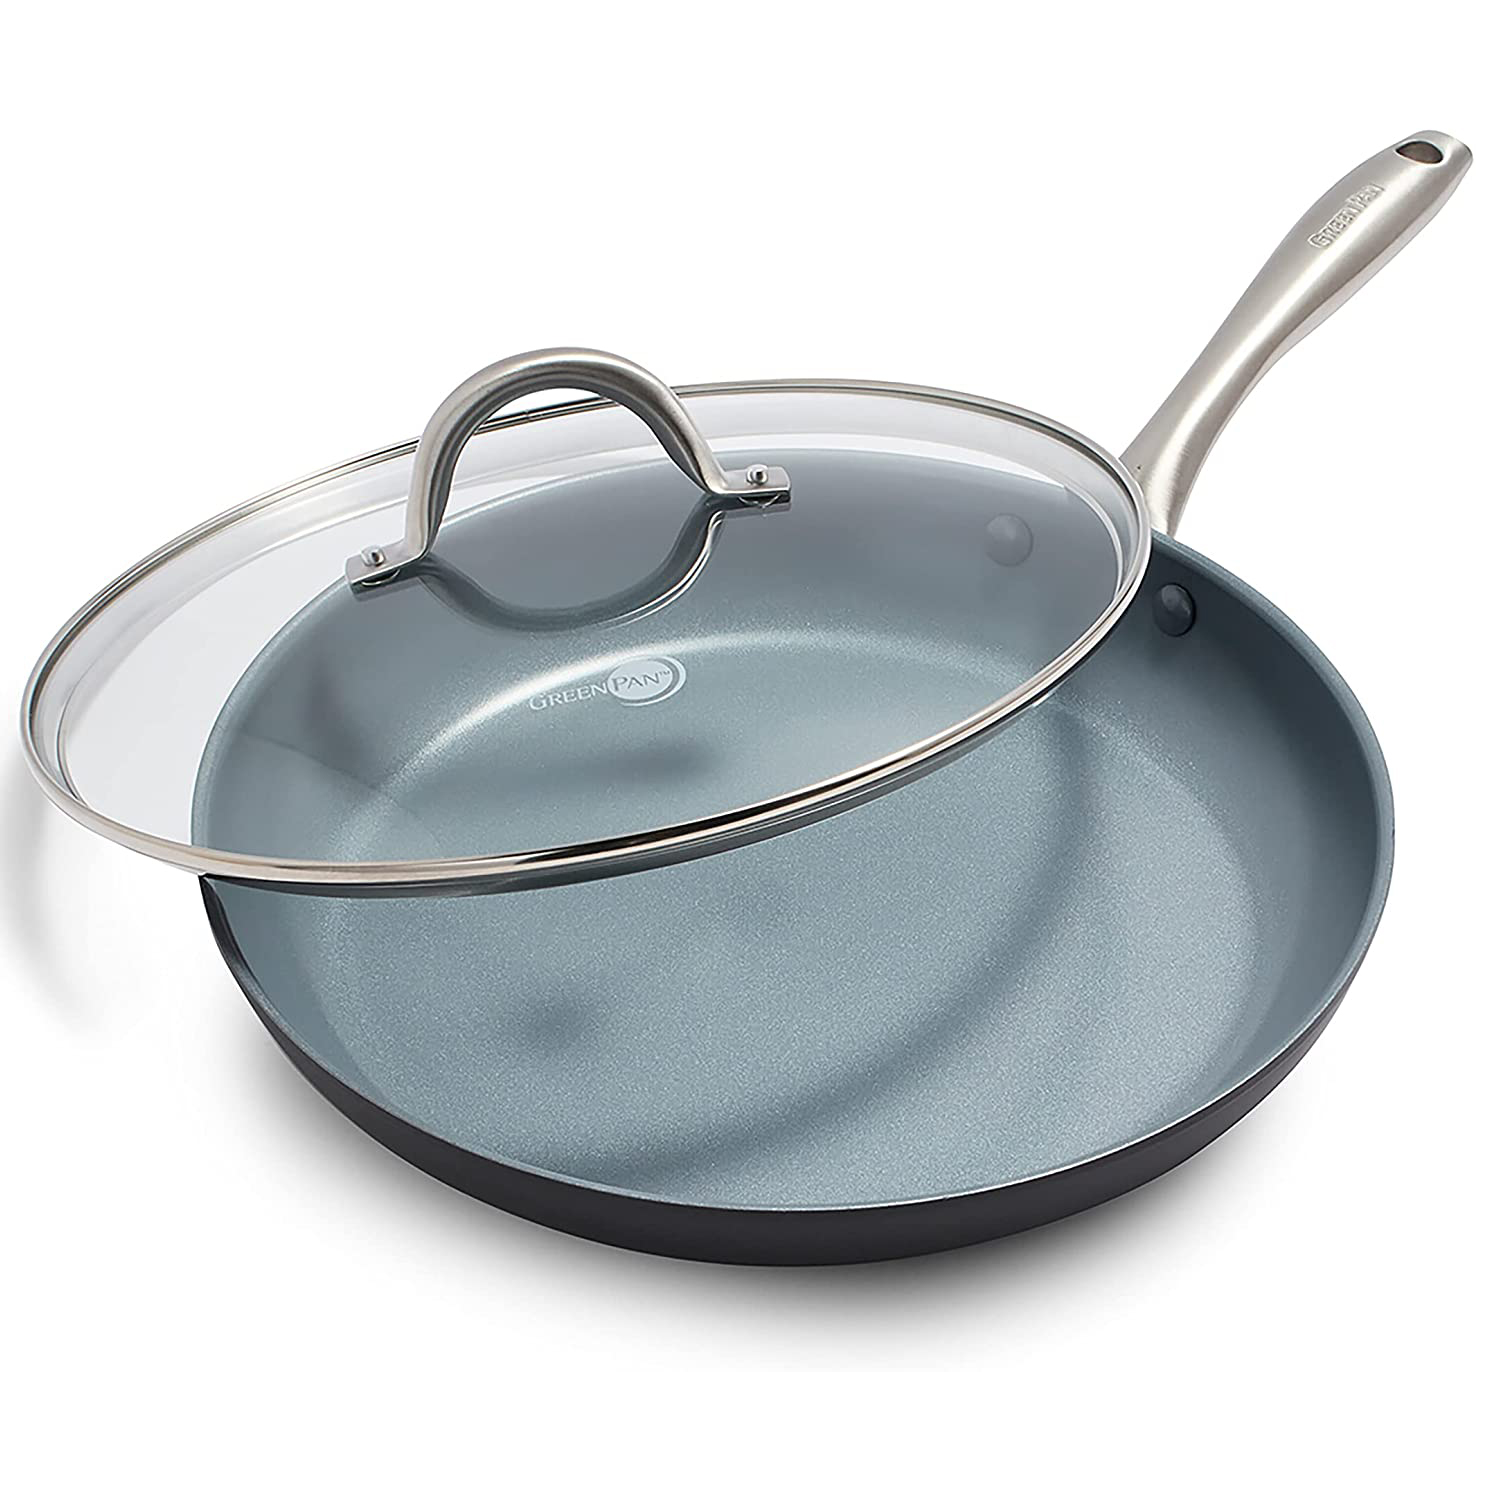 GreenPan Lima Healthy Ceramic Nonstick, Frying Pan/Skillet with Lid